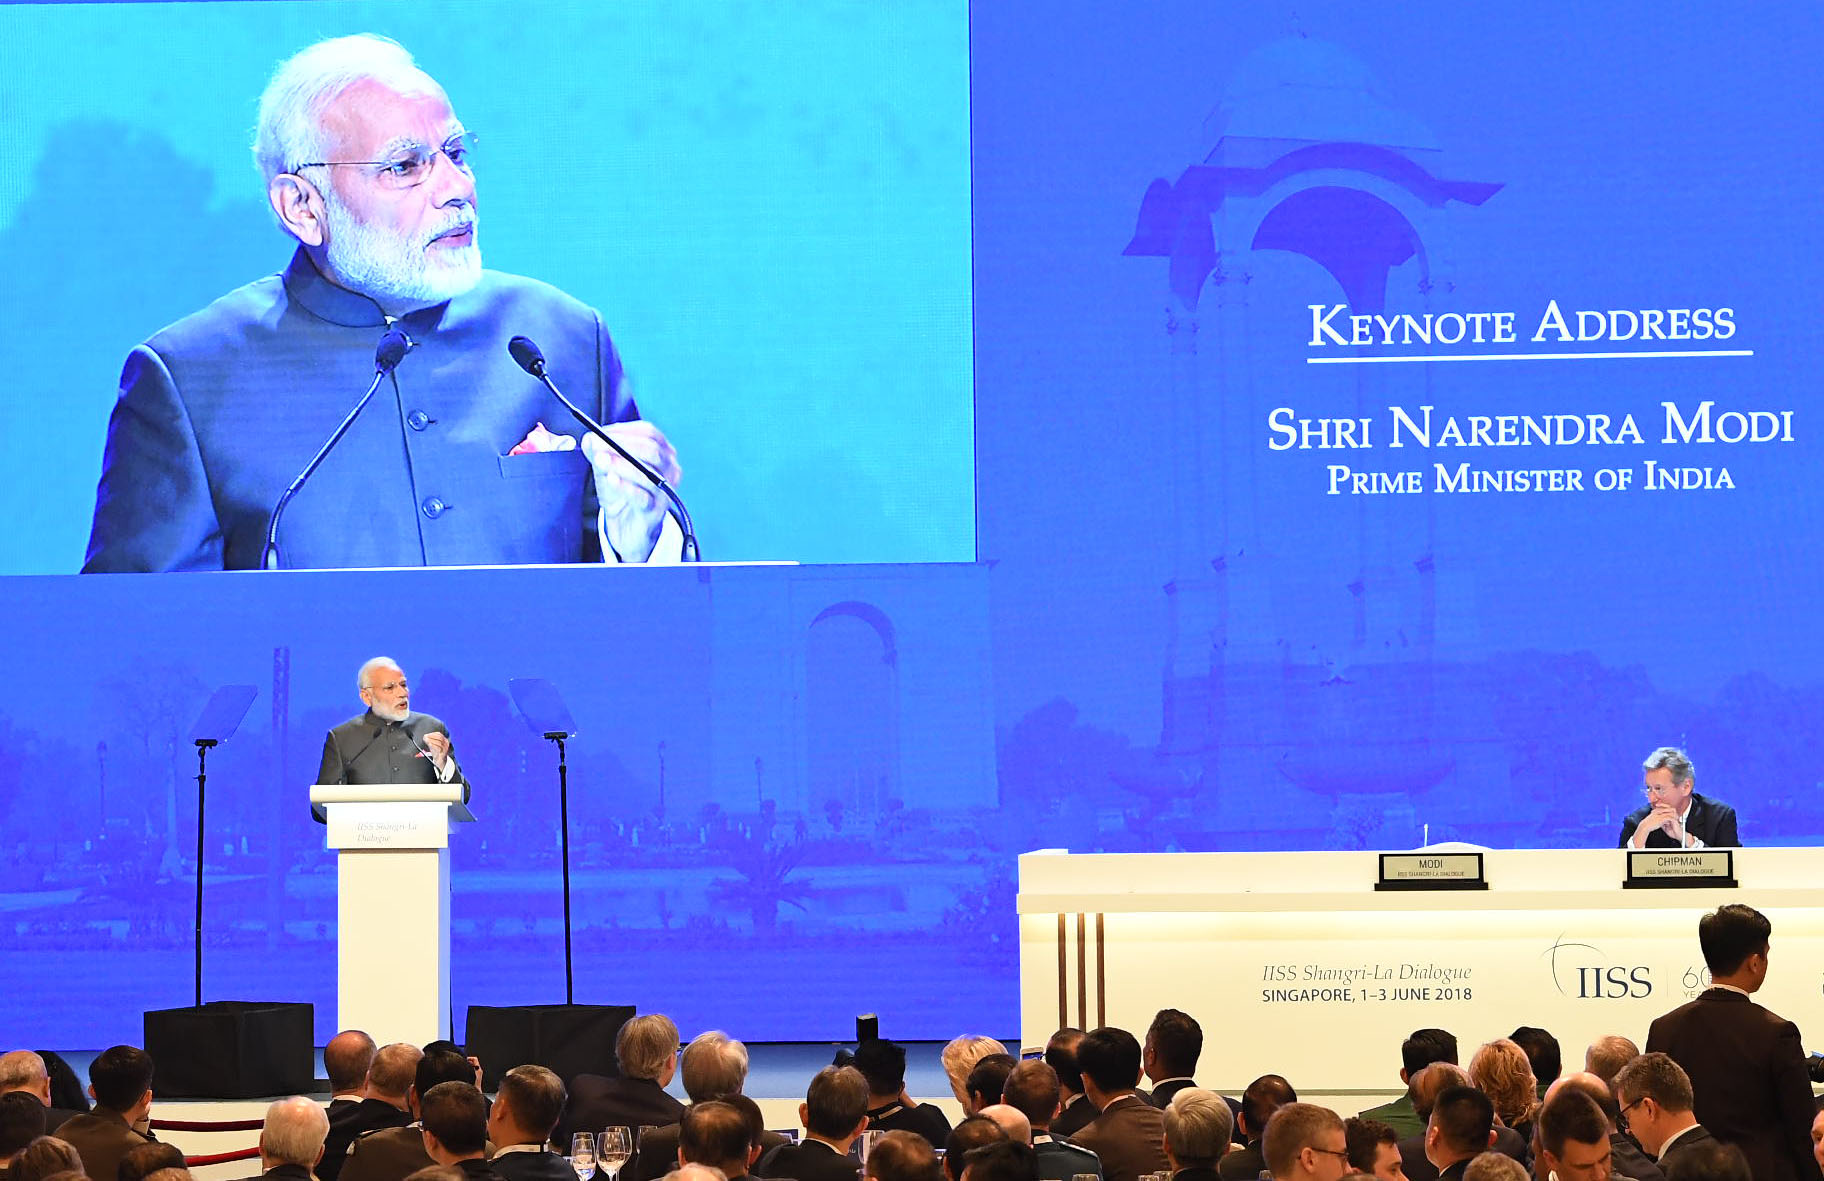 Indian Prime Minister Narendra Modi delivering the Keynote Address at Shangri La Dialogue, in Singapore. Photo courtesy: PMO)